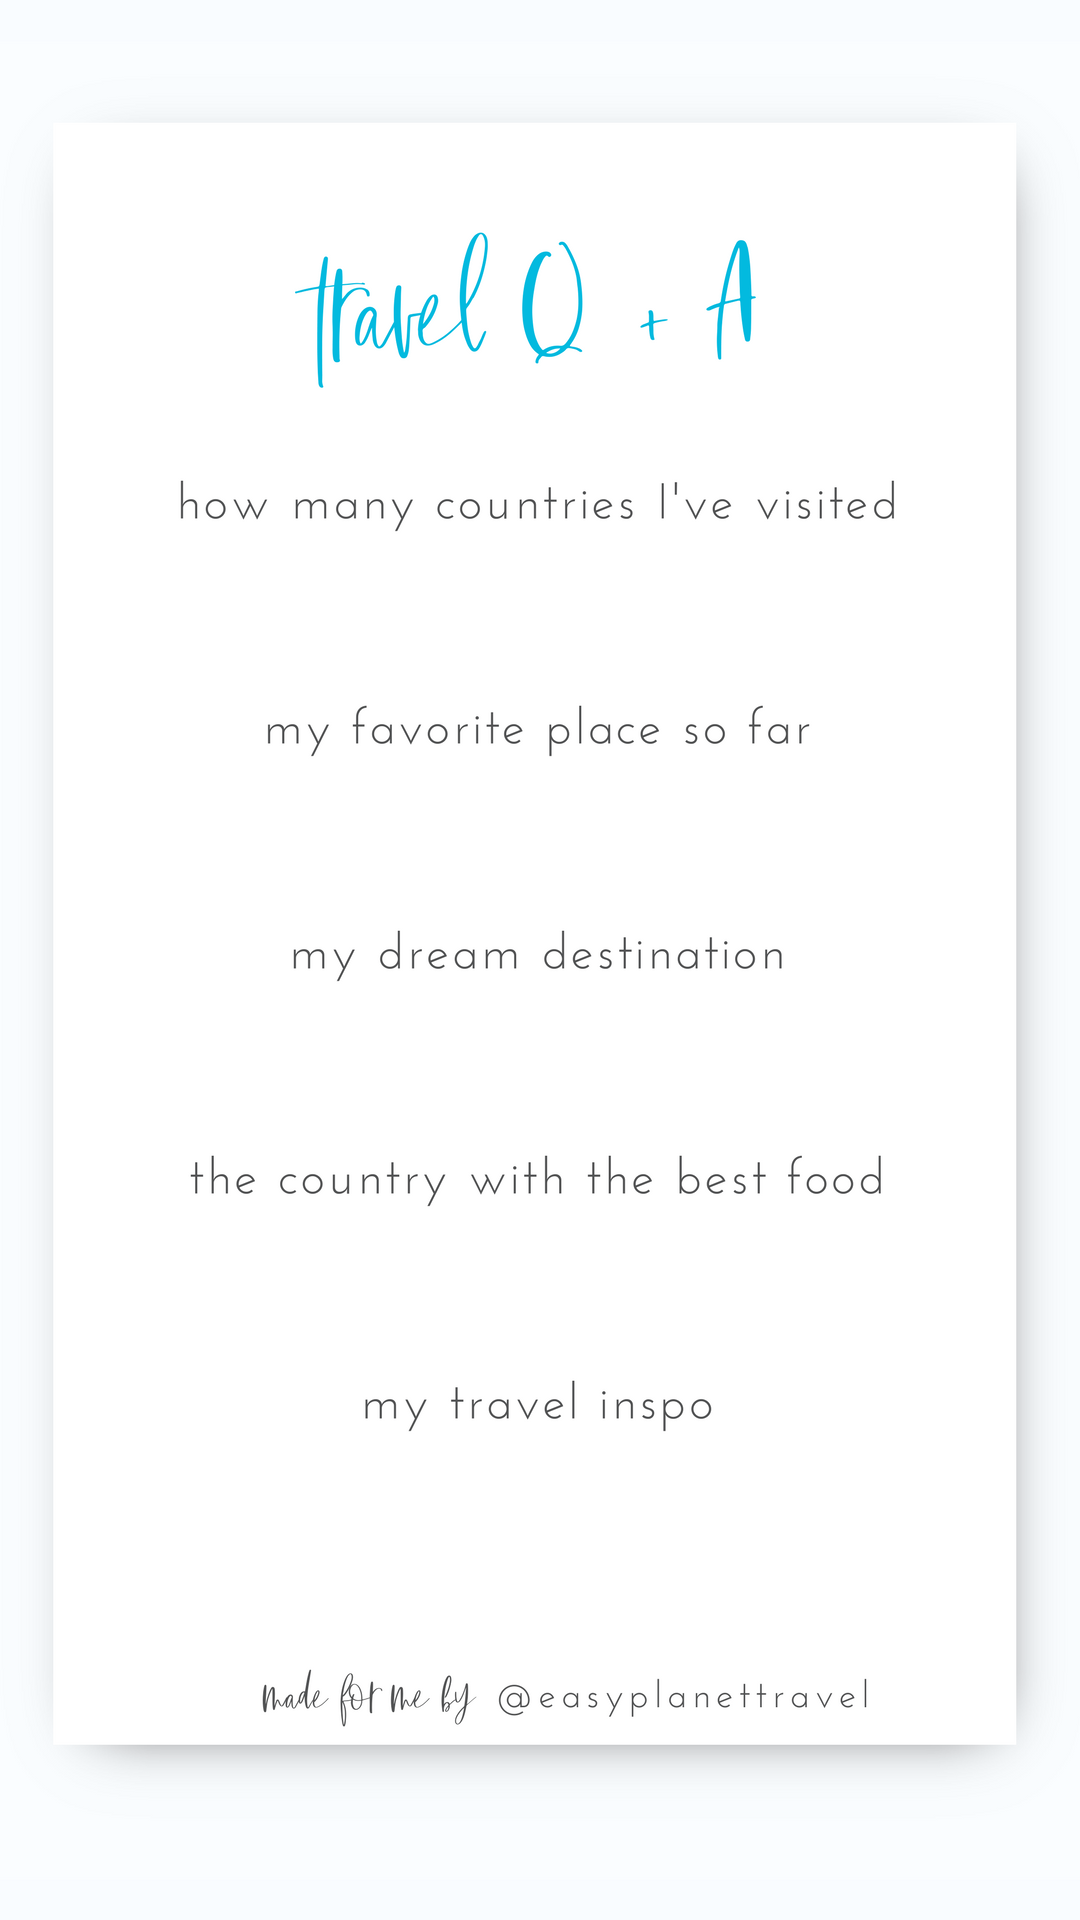 Travel Instagram Template Q and A - Easy Planet Travel